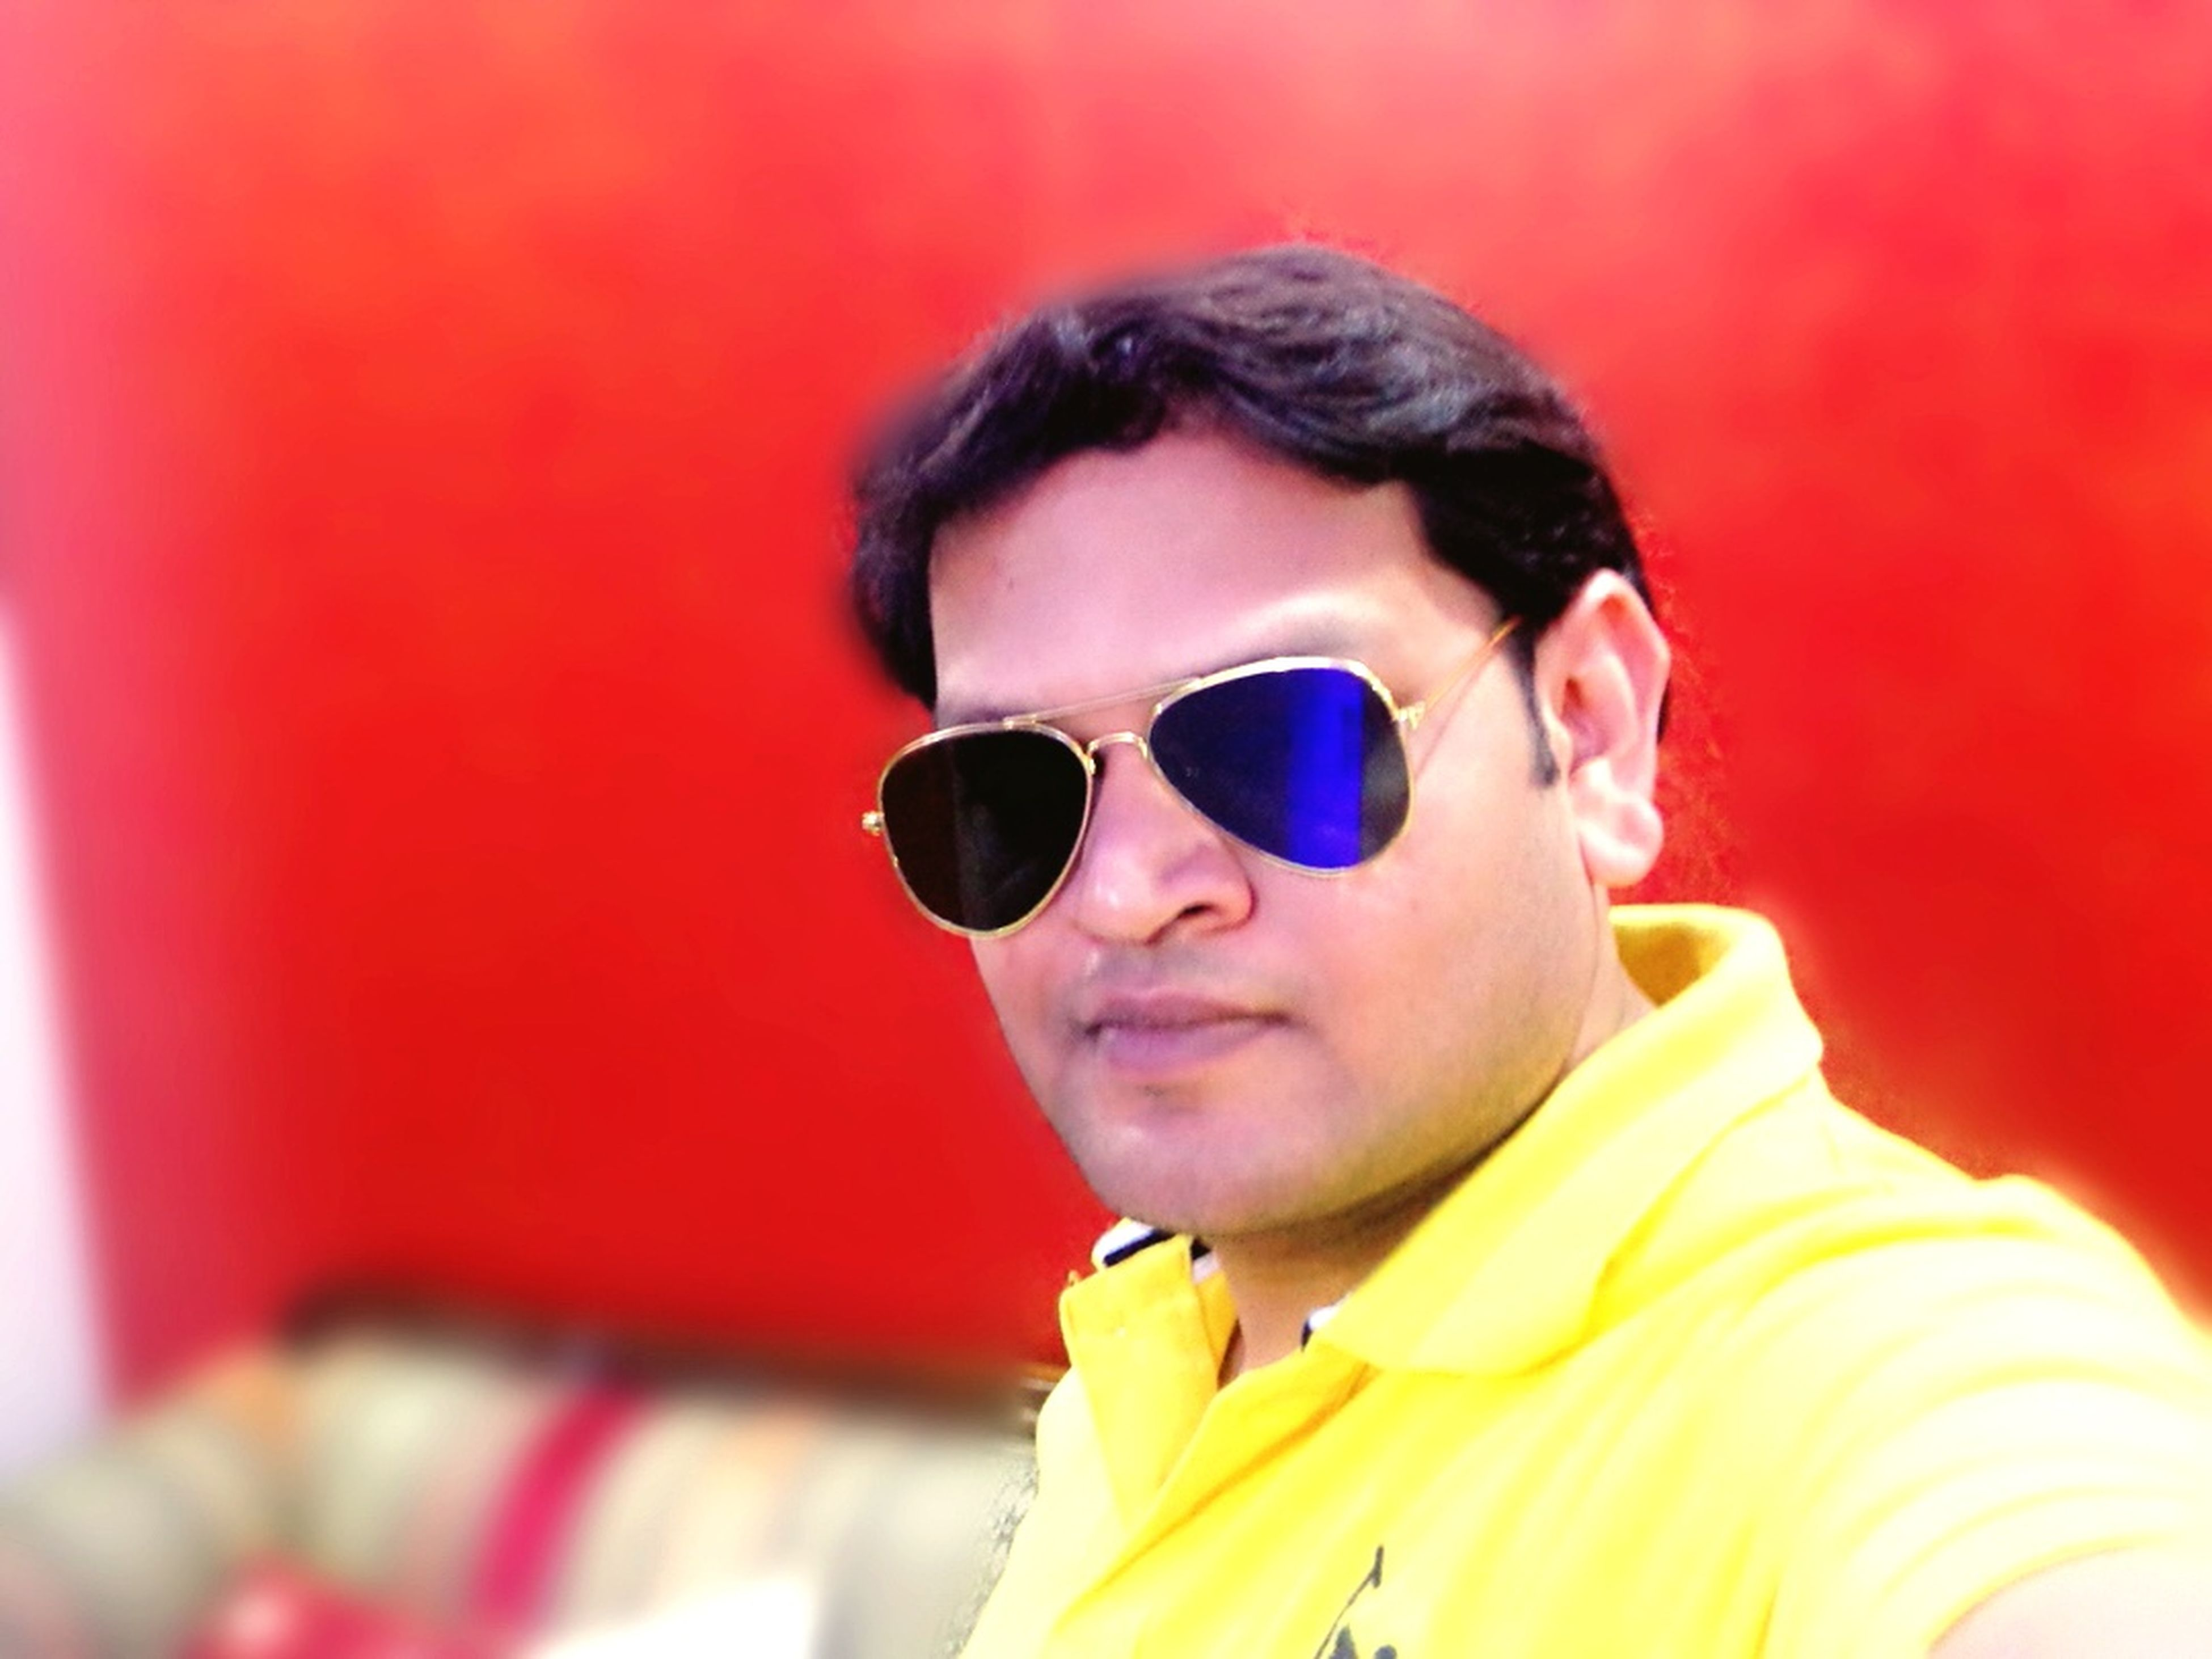 person, portrait, lifestyles, headshot, looking at camera, front view, leisure activity, childhood, young adult, casual clothing, smiling, elementary age, sunglasses, happiness, focus on foreground, boys, red